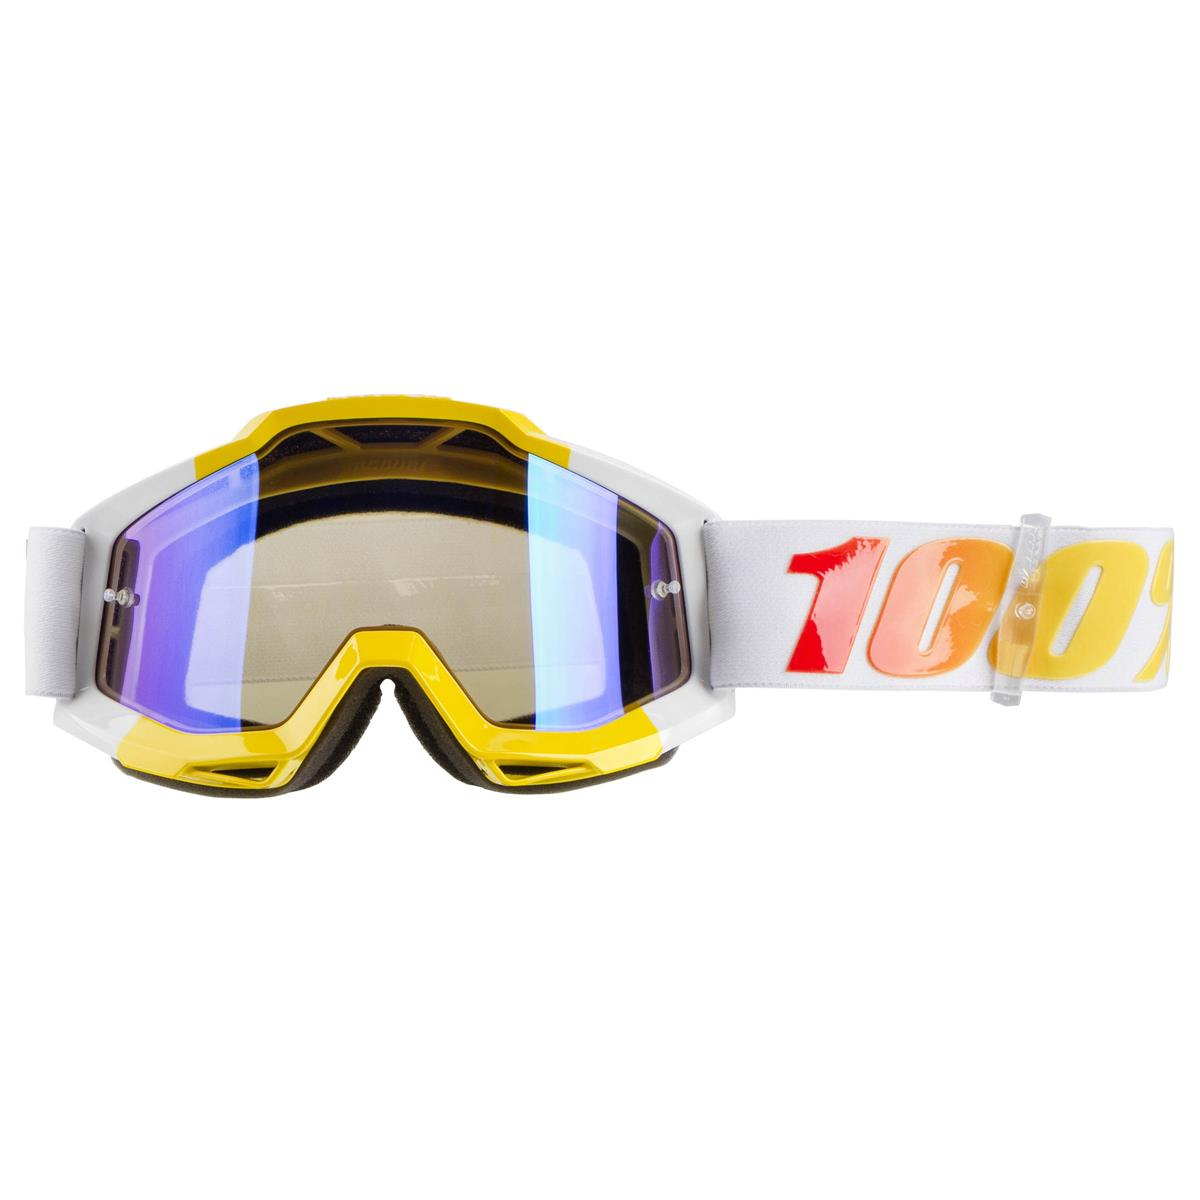 100/% Accuri Adult Off-Road Motorcycle Goggles Astra//Clear Lens//One Size